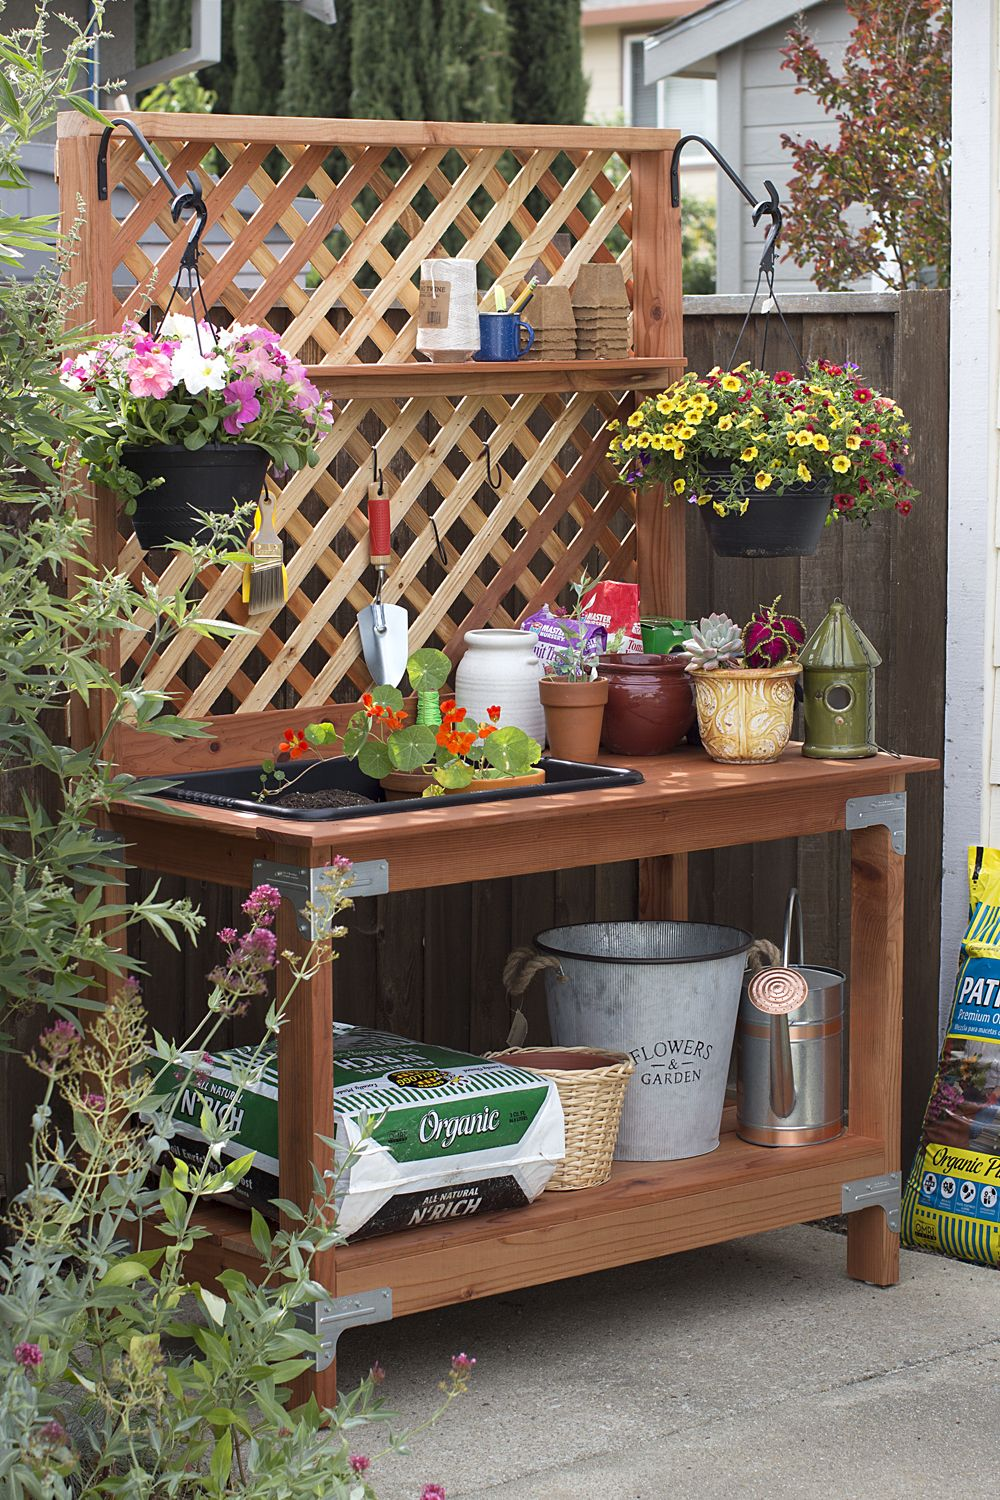 16 Free Potting Bench Plans To Organized And Make Gardening Work Easy Diy Gardening Ideas